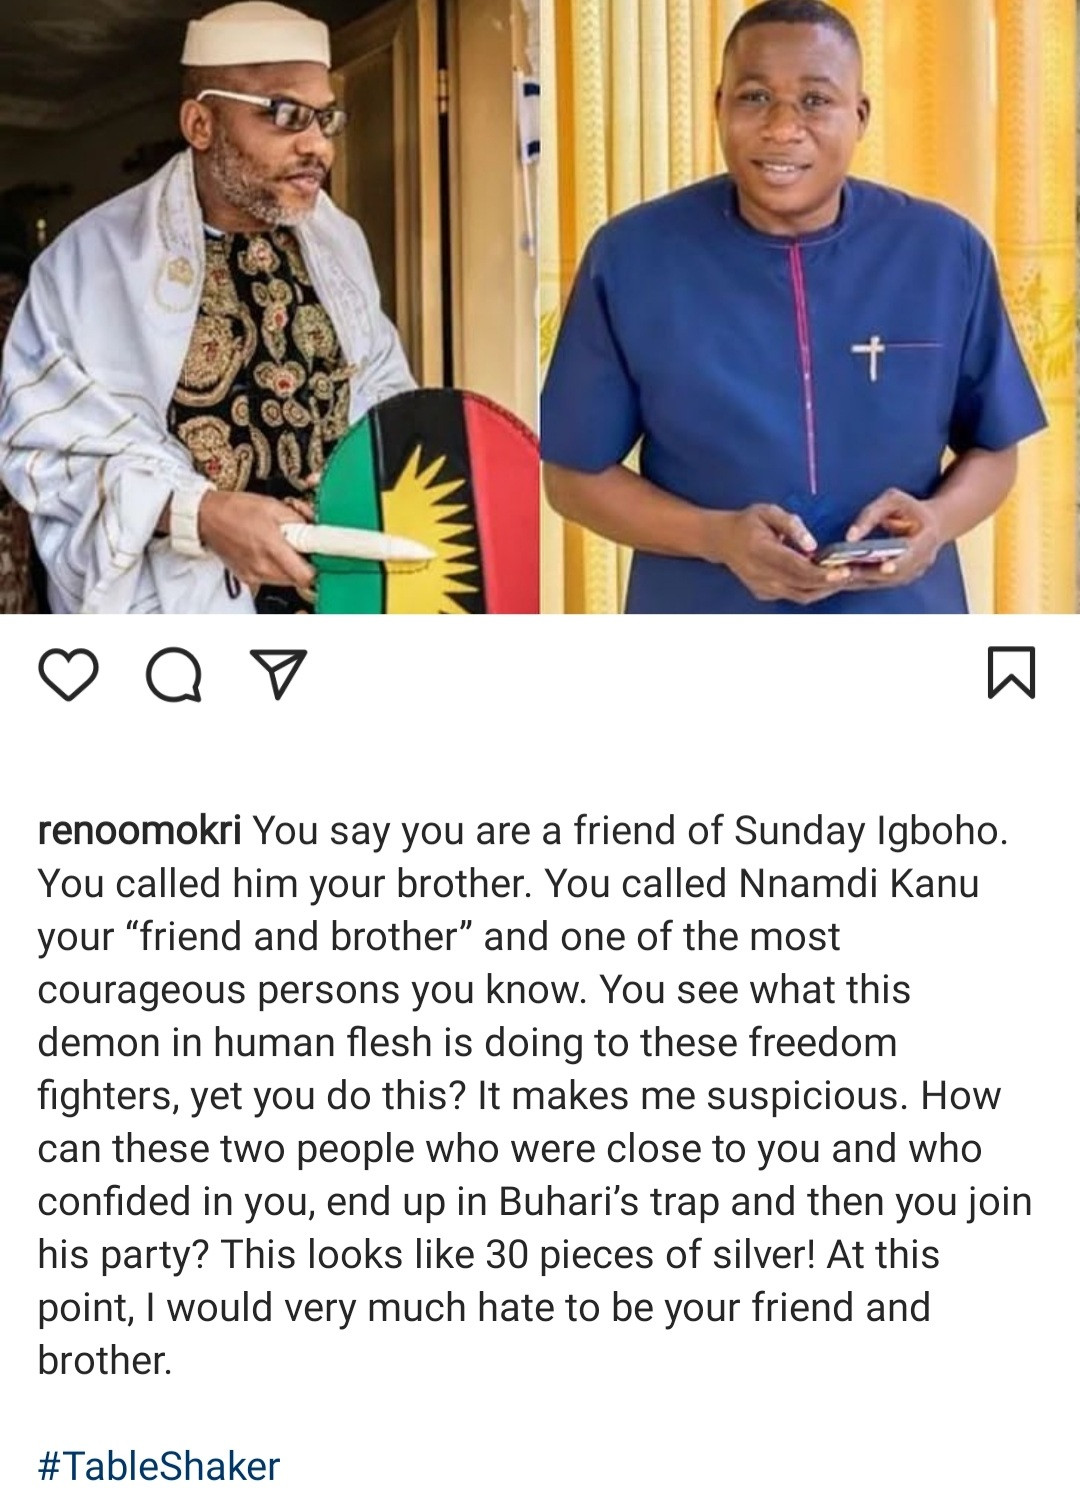 You say Nnamdi Kanu and Igboho are your brothers and then you join Buhari